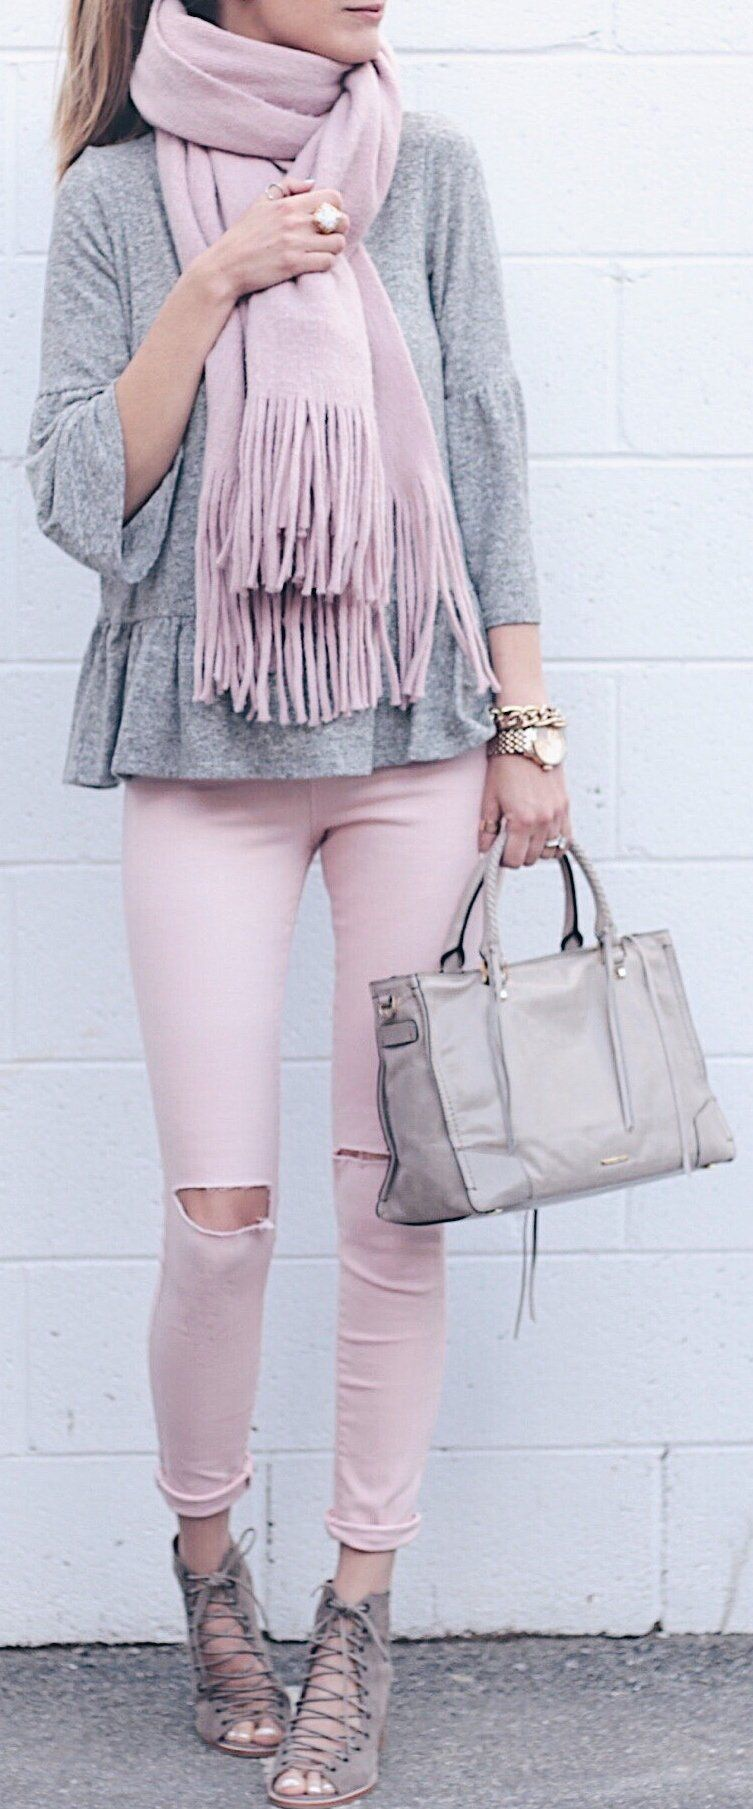 spring fashion  pink fringe scarf  grey top  pink